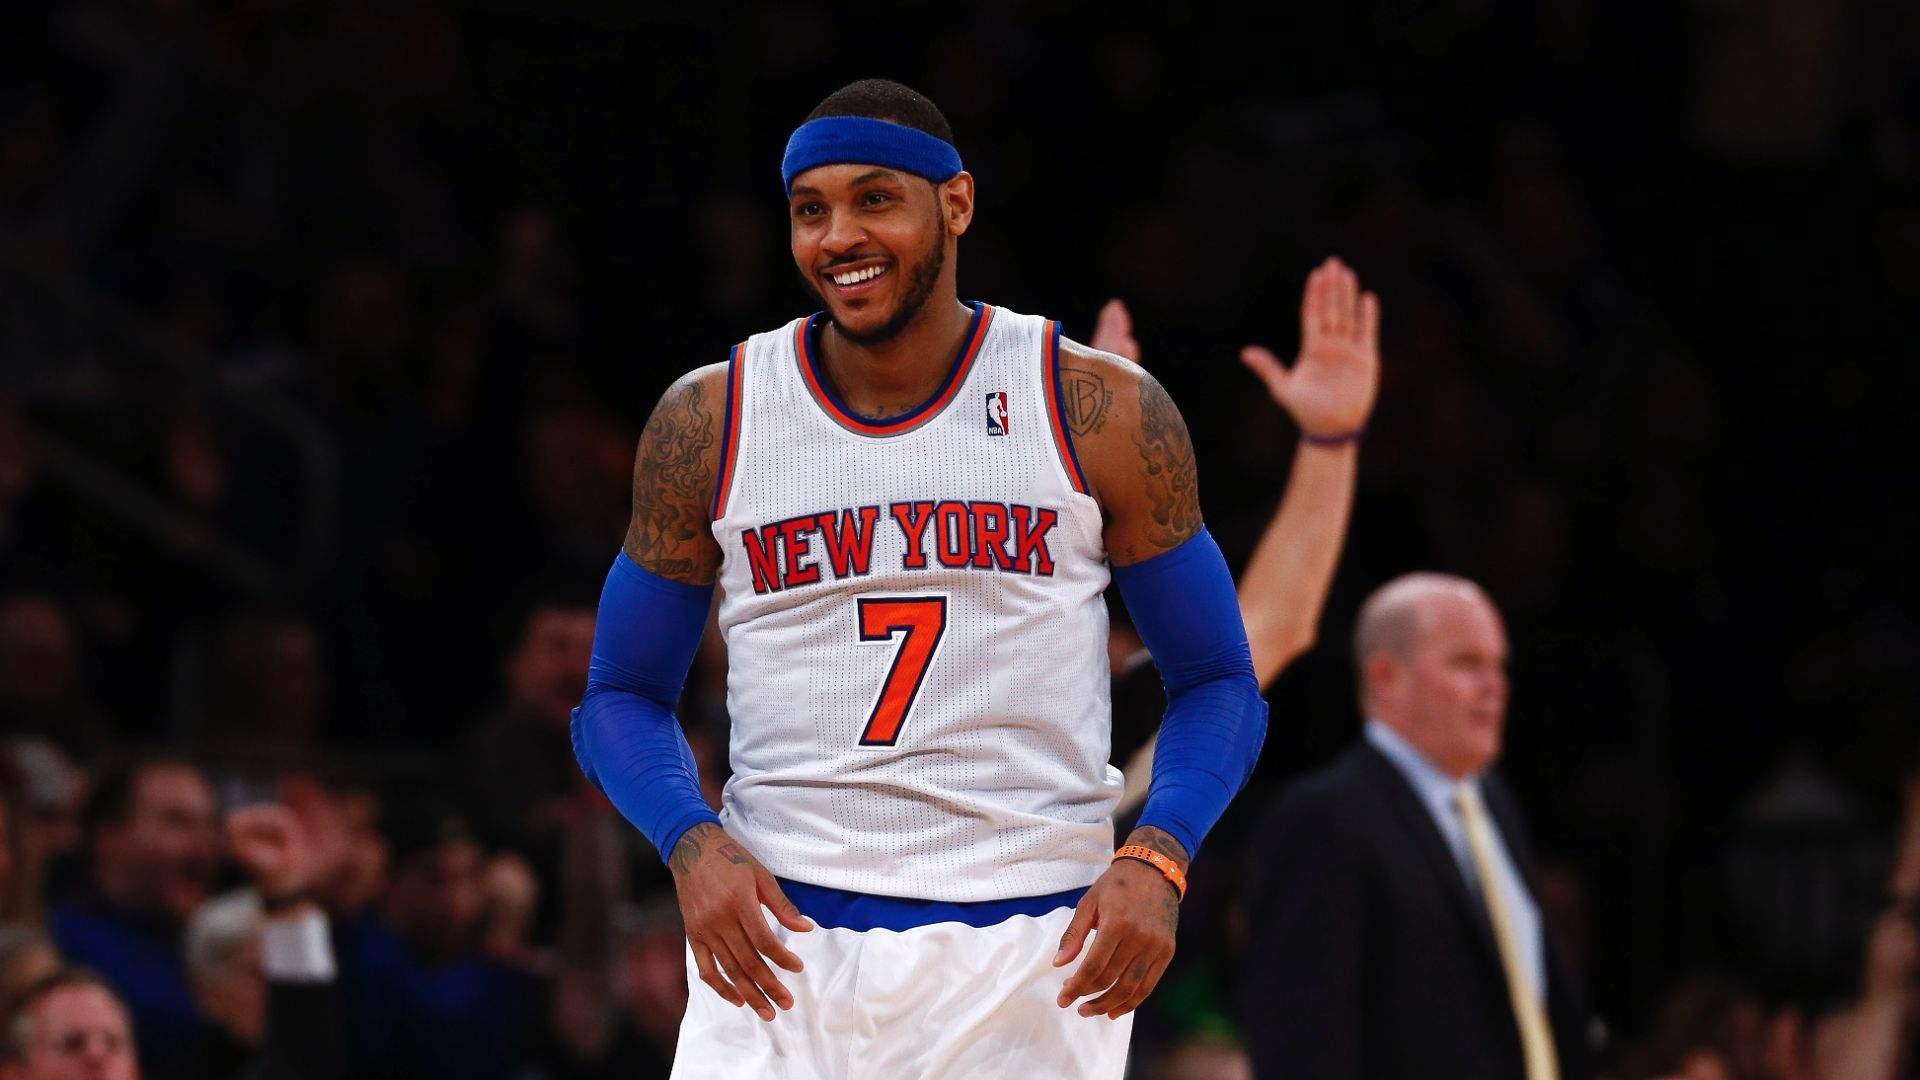 Relive Melo's greatest moments as a Knick